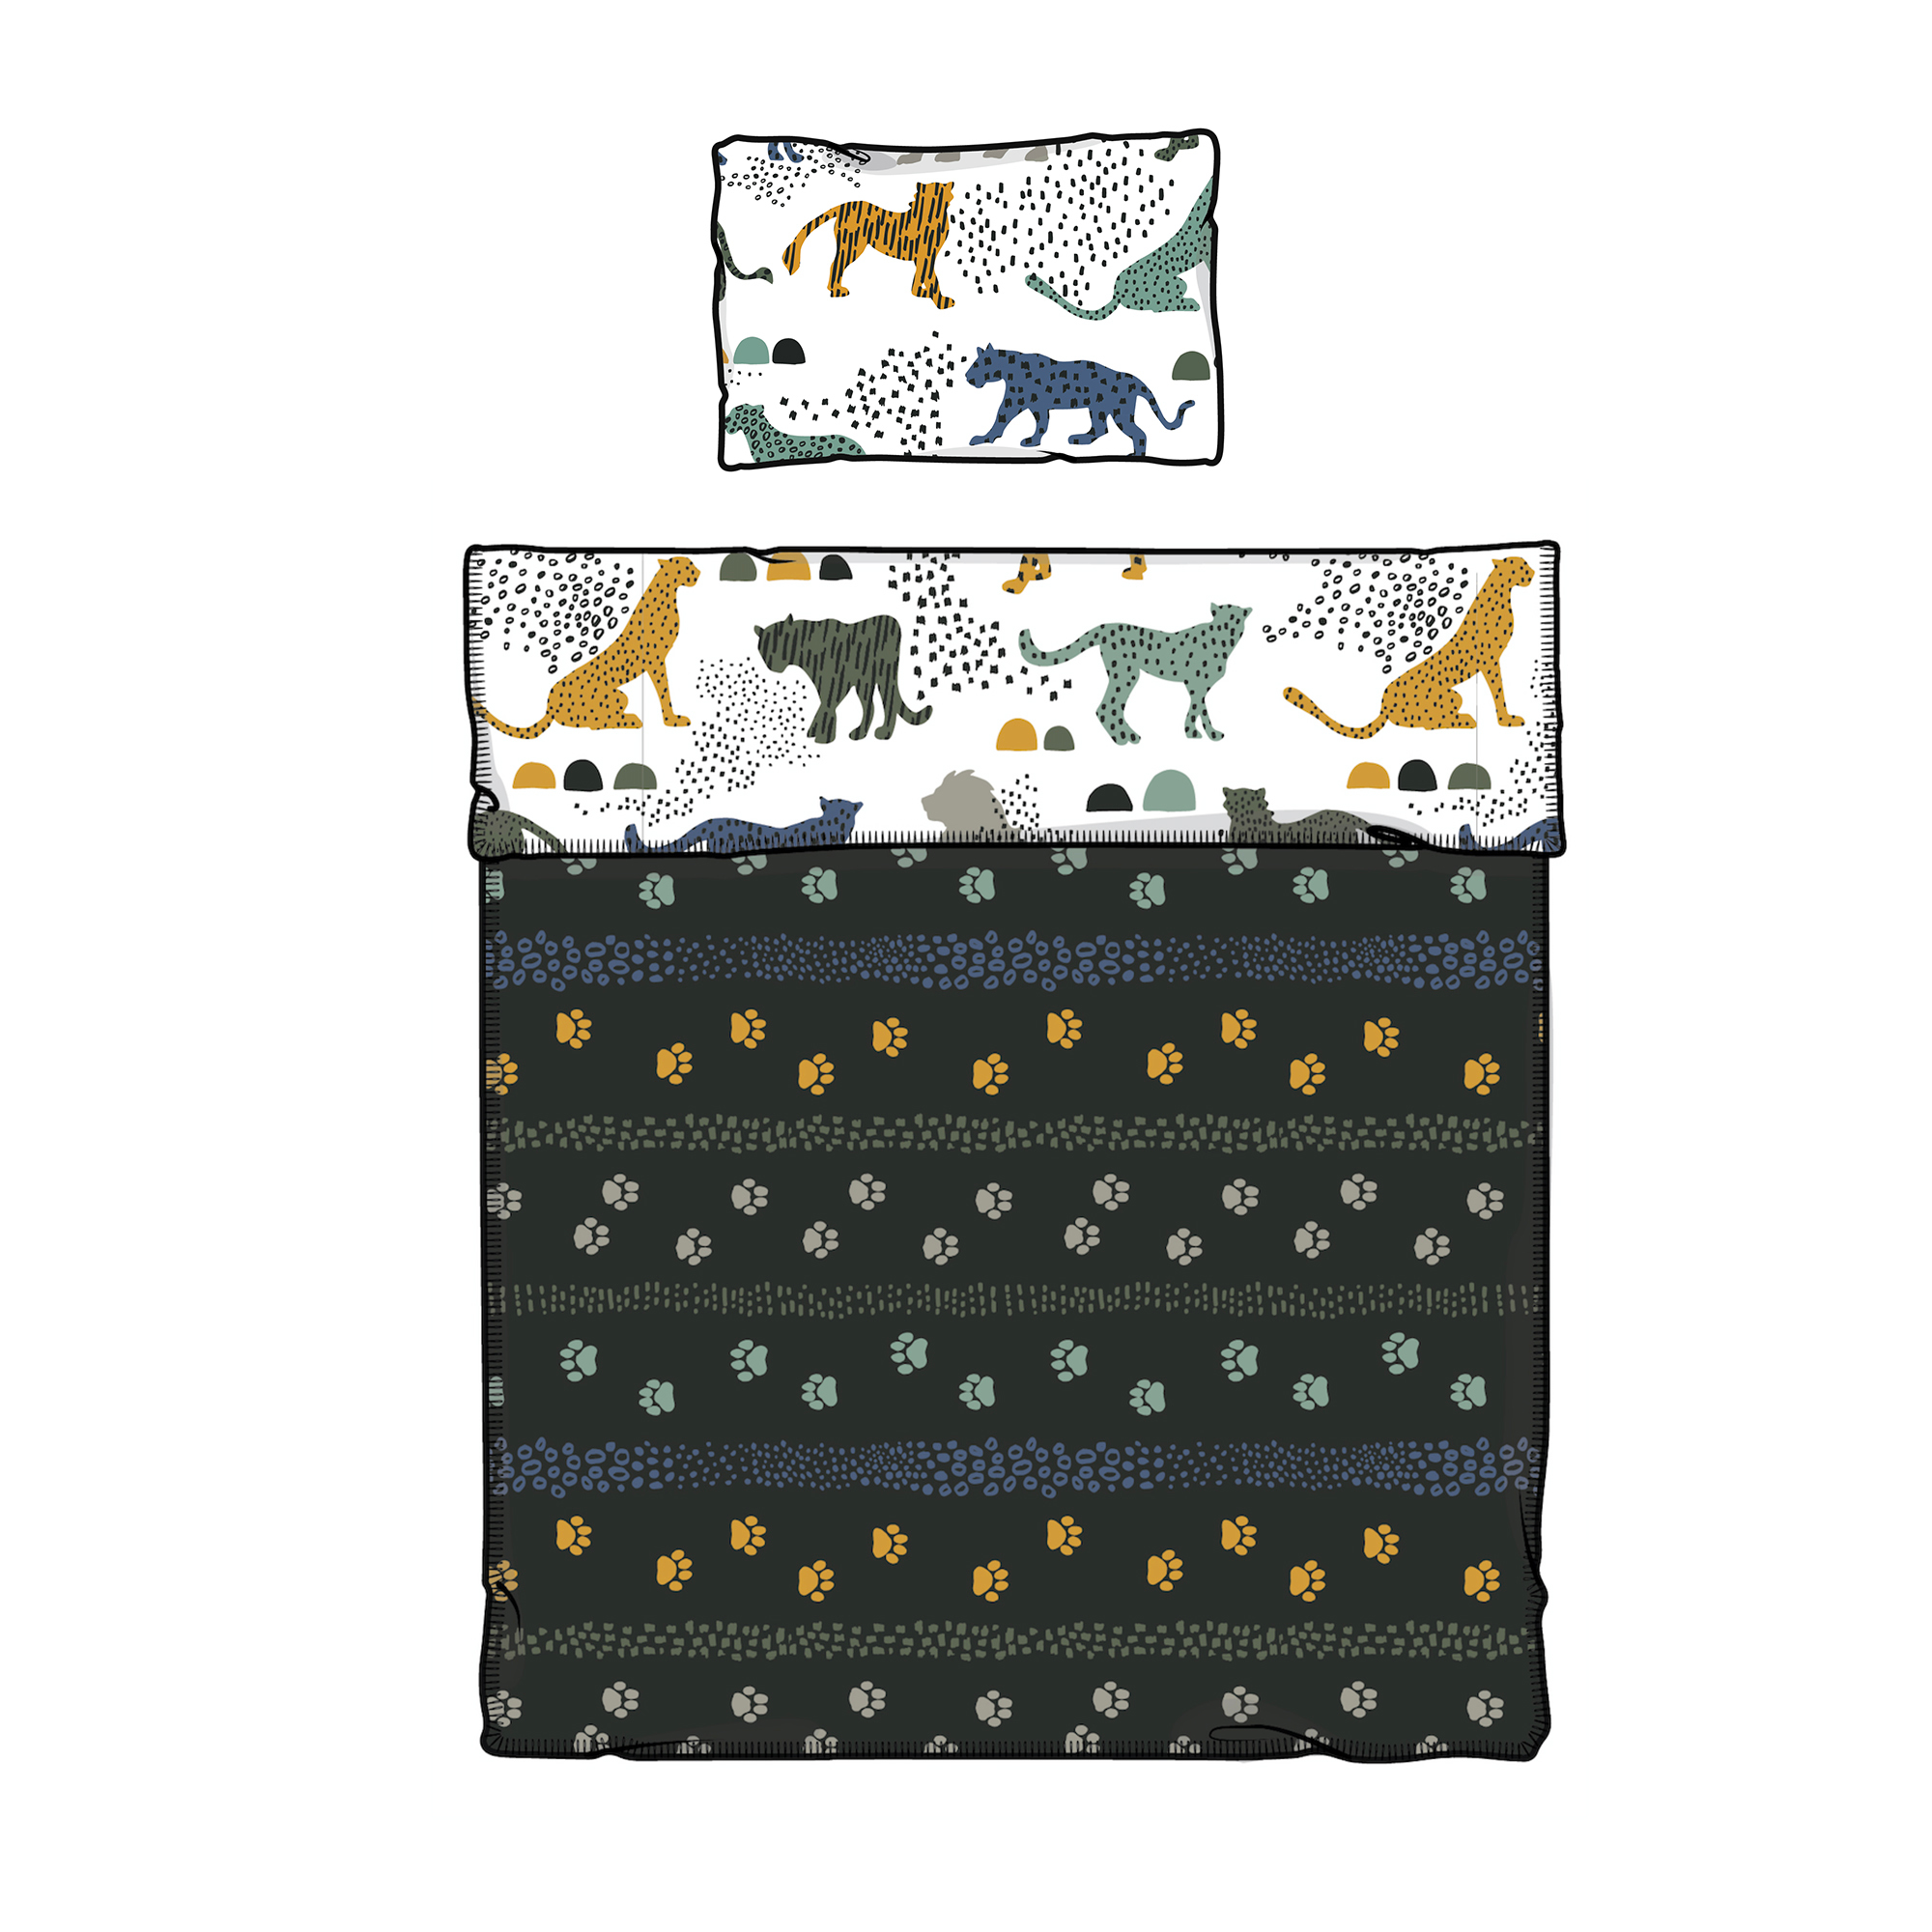 South Shore Dreamit White and Green Comforter and Pillowcase Safari Wild Cats, Multiple Sizes